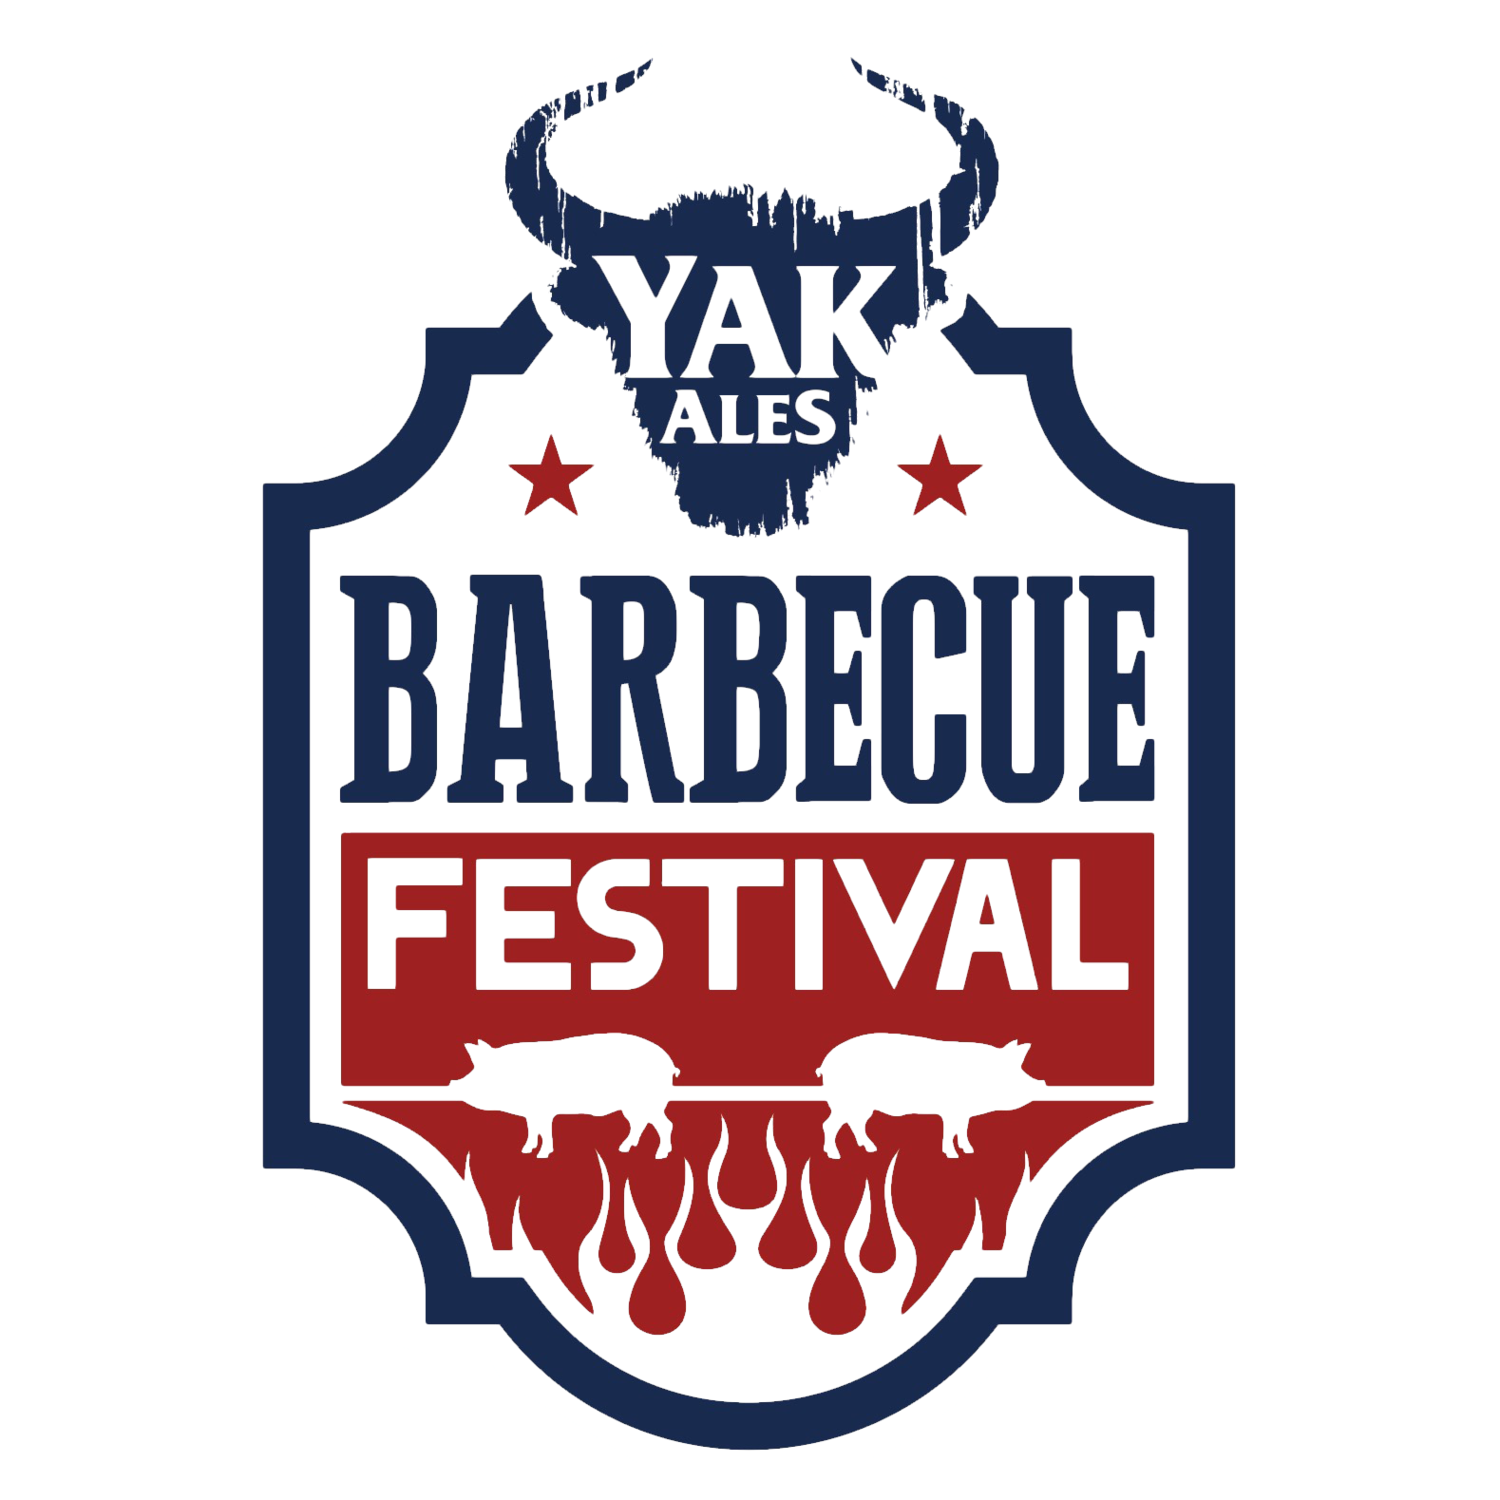 Yak Ales Barbecue Festivals